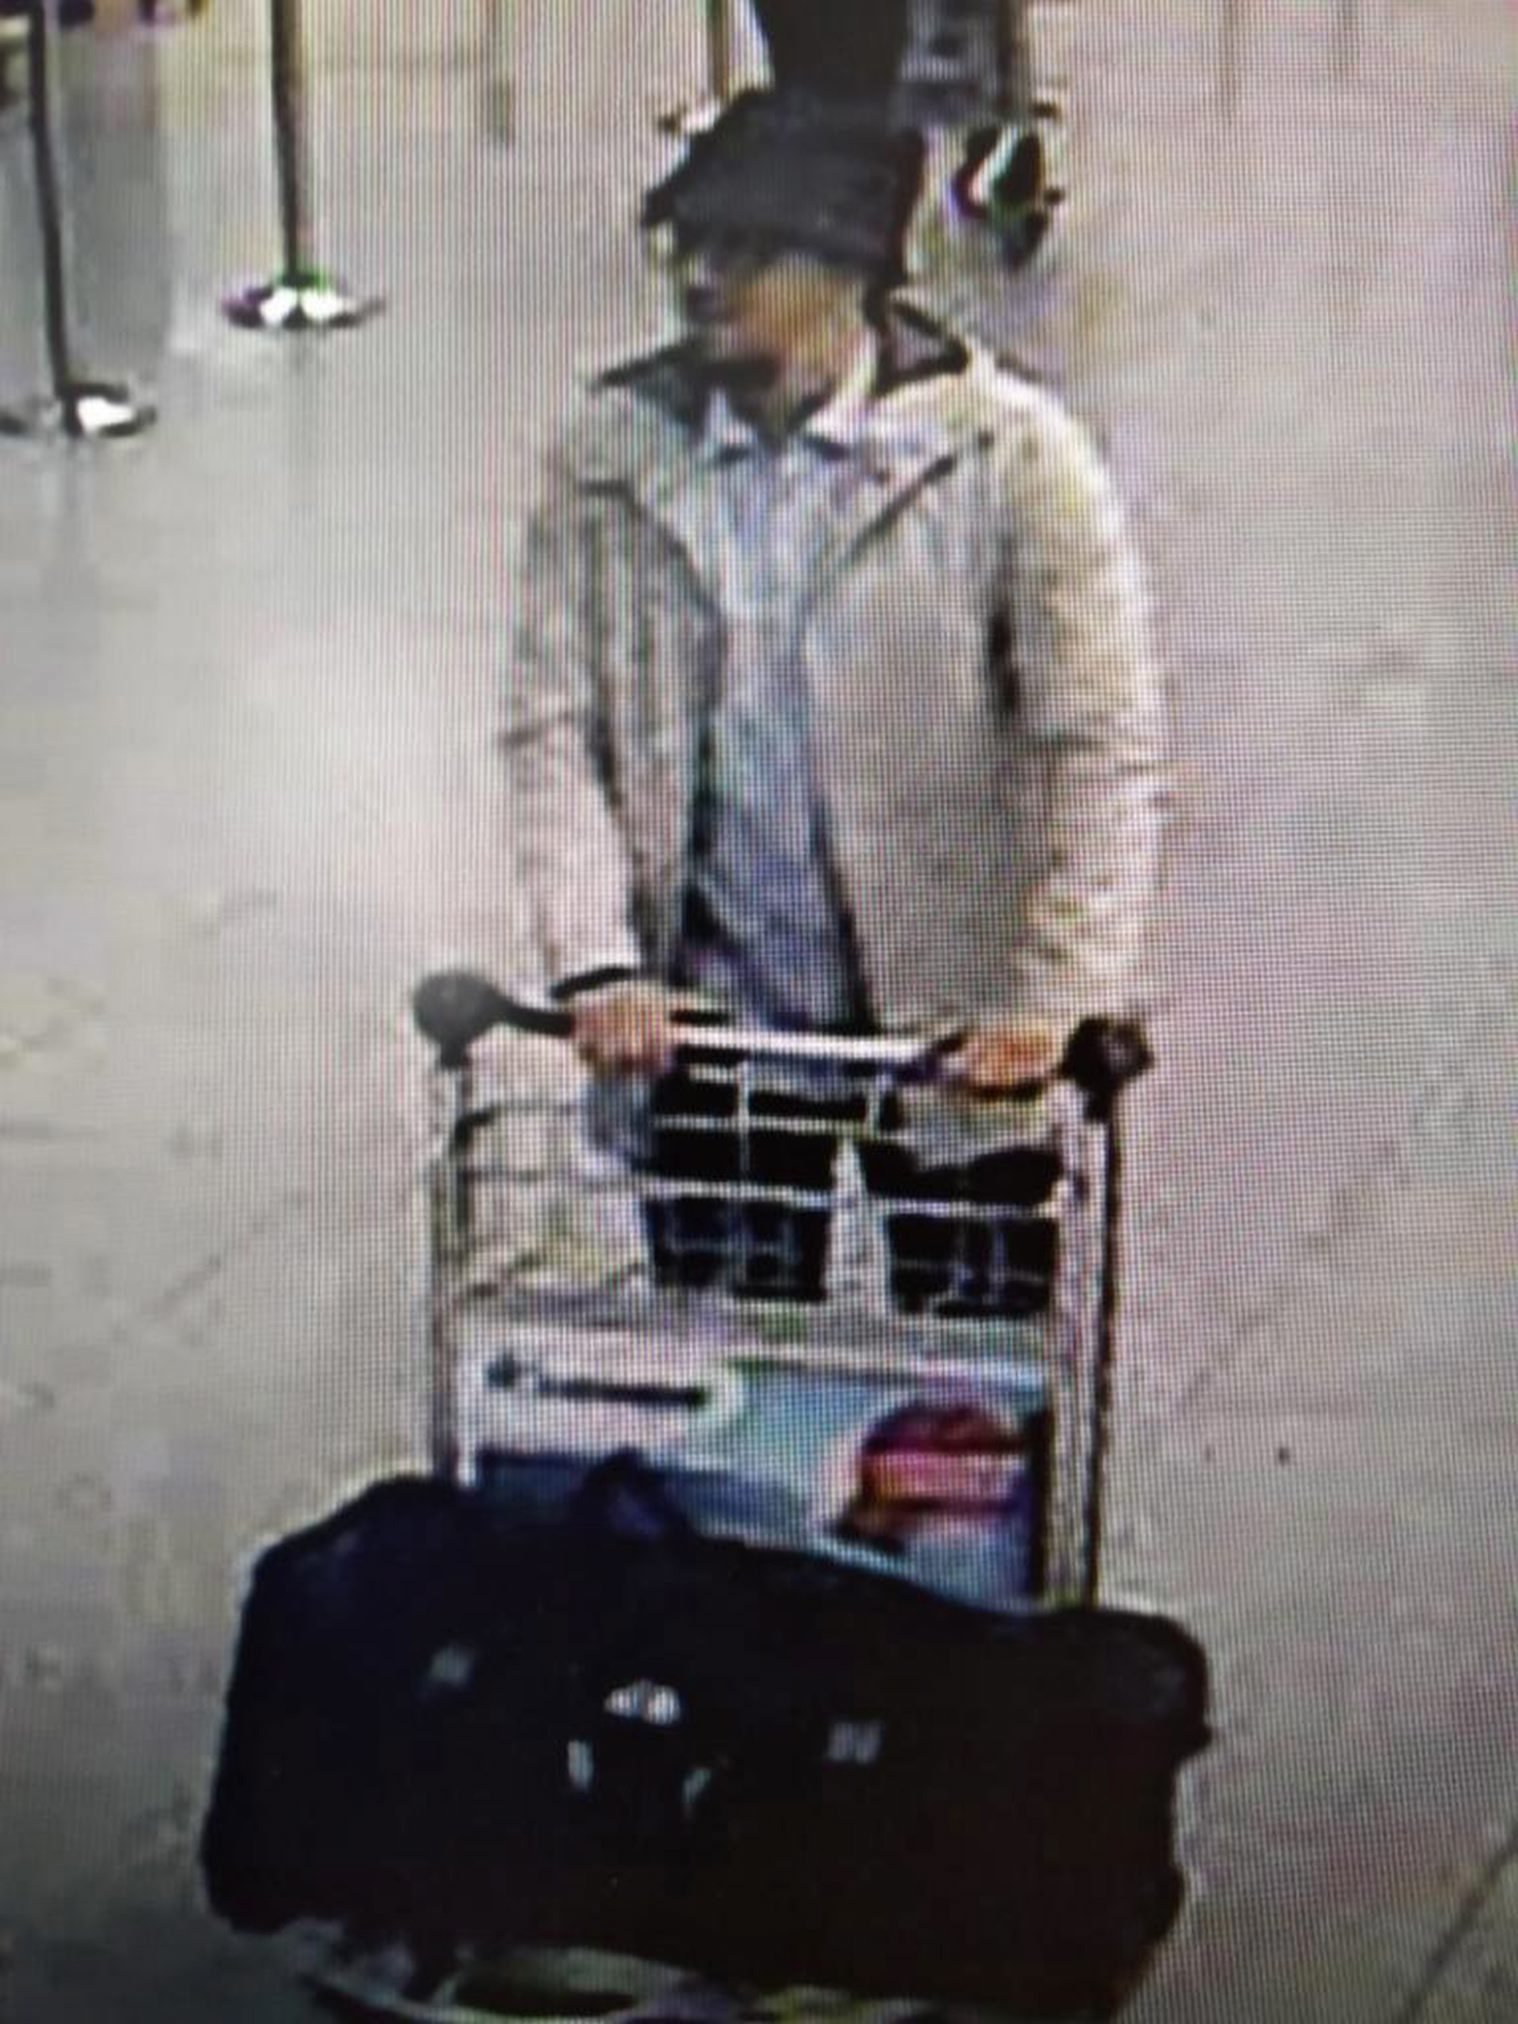 CCTV grab of a suspect in the Zaventem airport attack in Brussels on March 22, 2016. The man was previously believed to be Fayçal Cheffou, who has now been released due to a lack of evidence